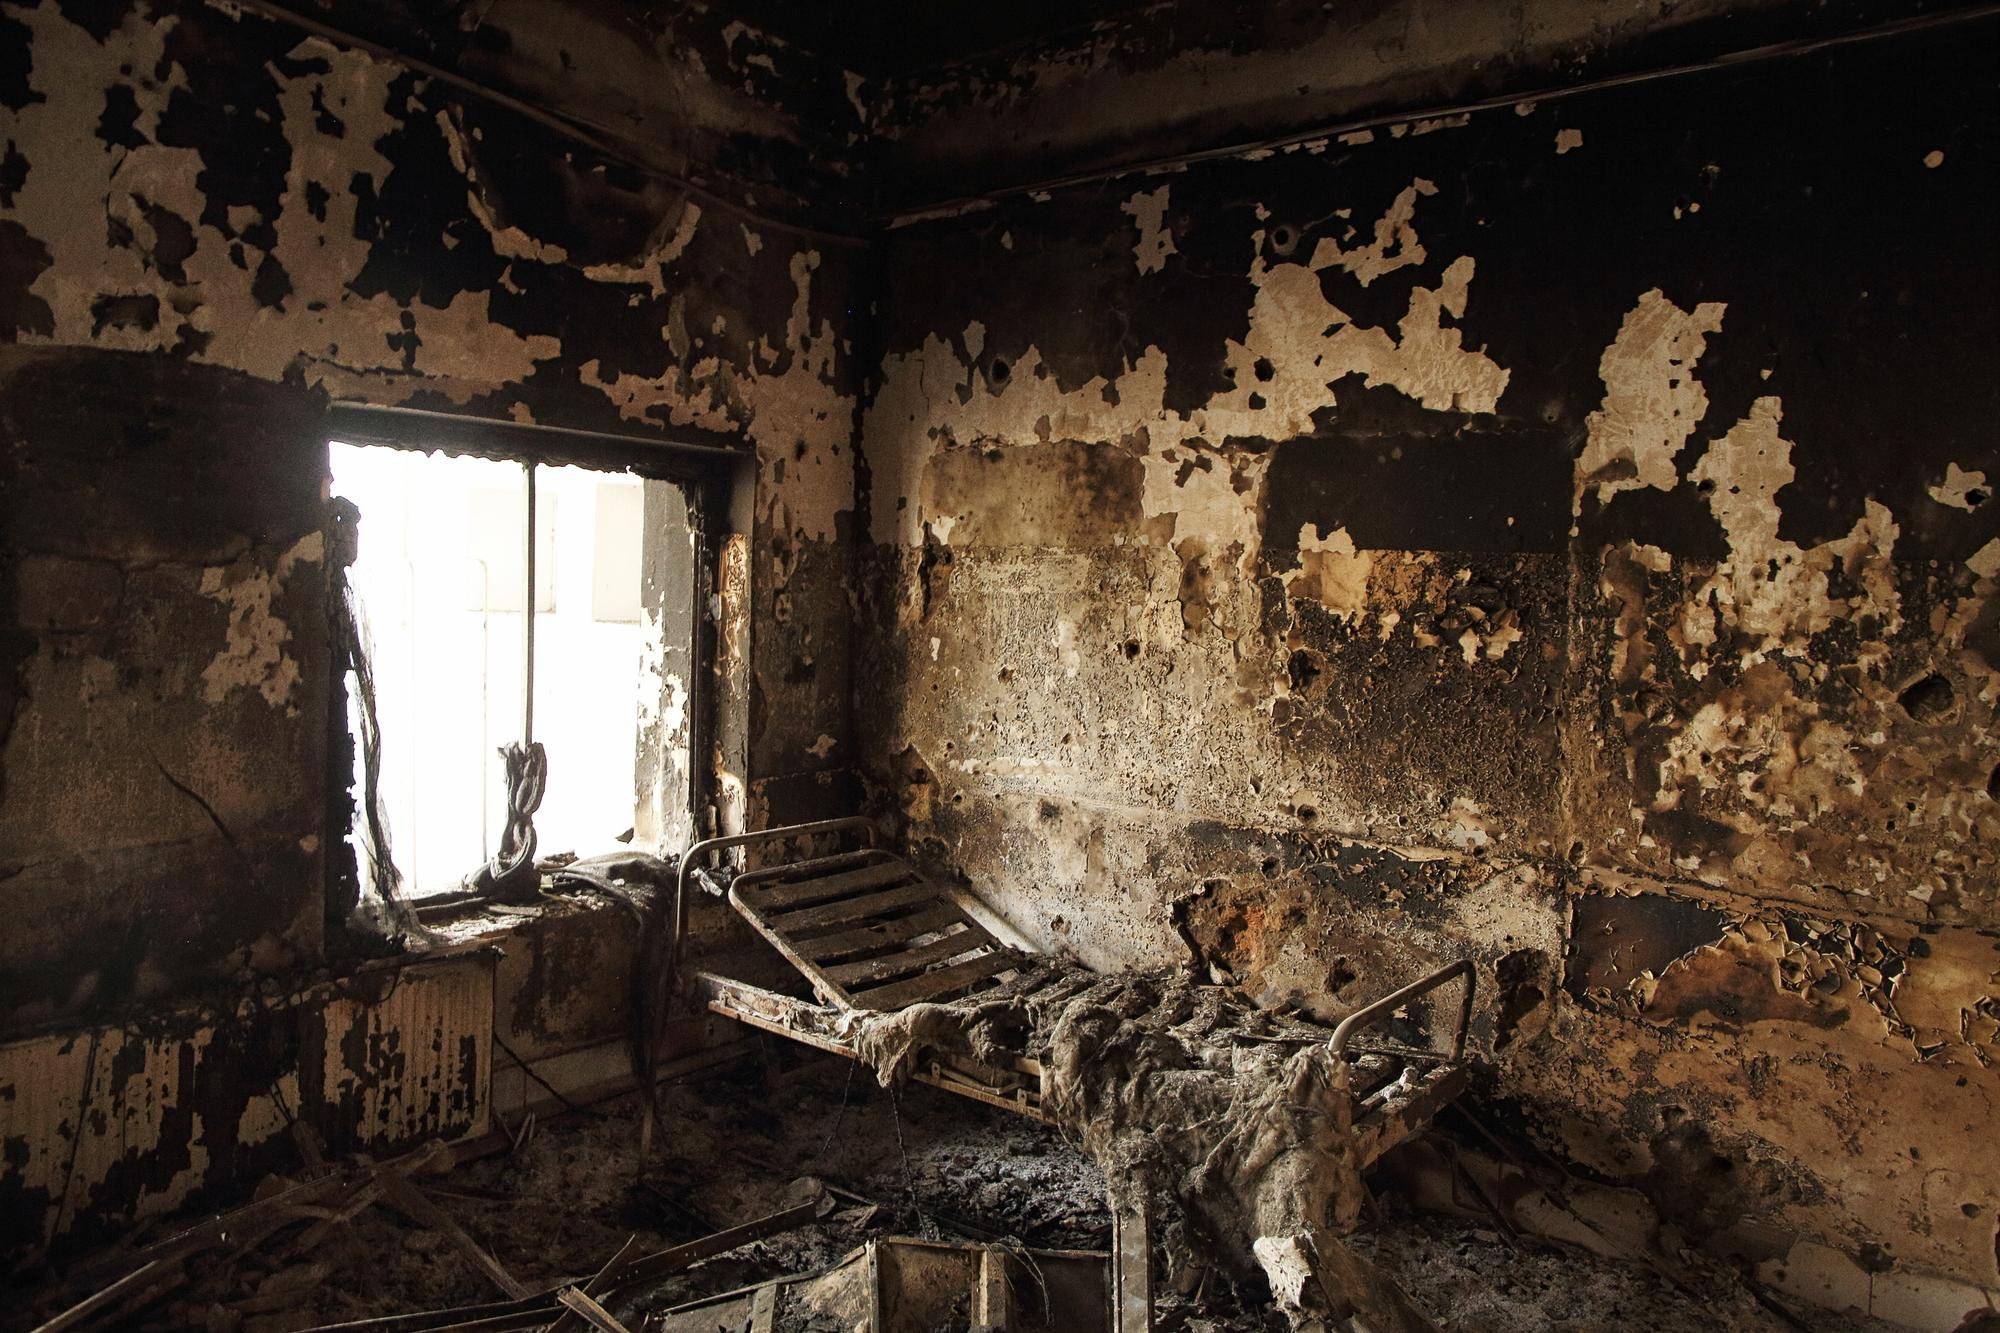 """Even War Has Rules"": Remarks On Kunduz By Deane Marchbein And Jason Cone In Washington, DC"